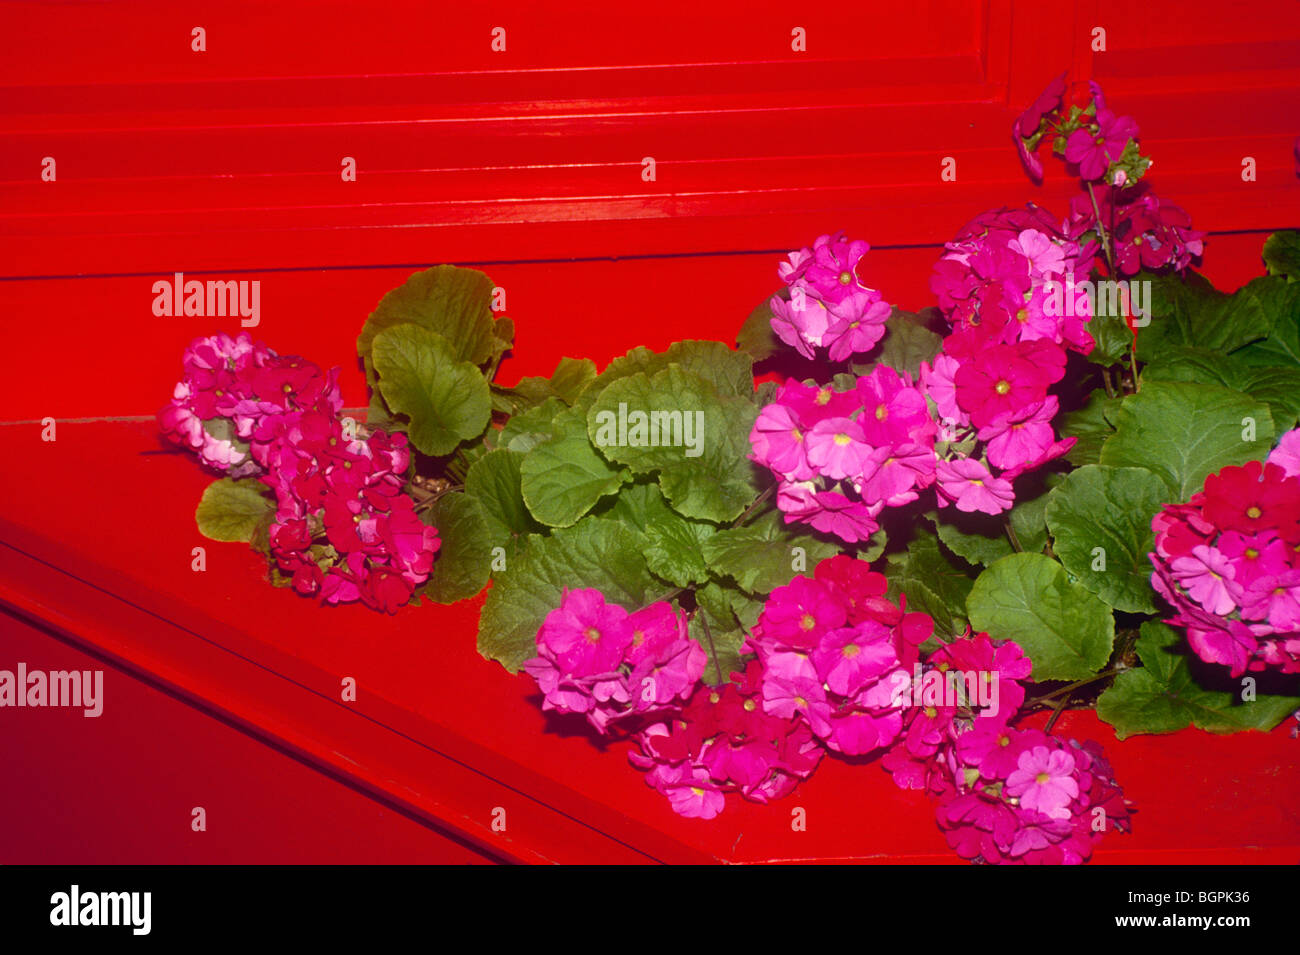 Red painted wood planted holds pink geraniums in a riot of color. - Stock Image